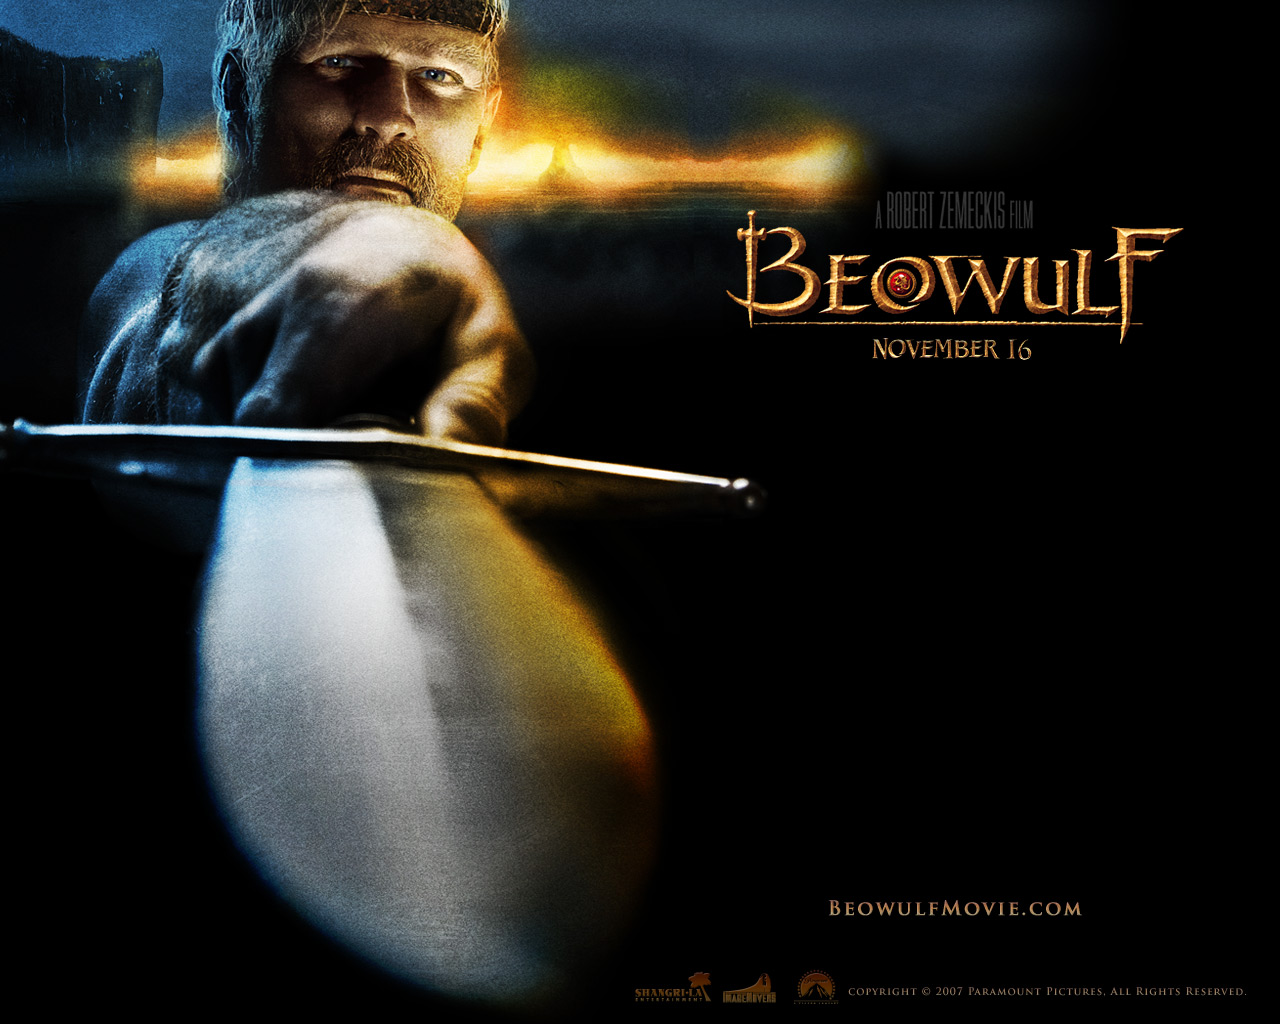 Qualities of Courage in Beowulf